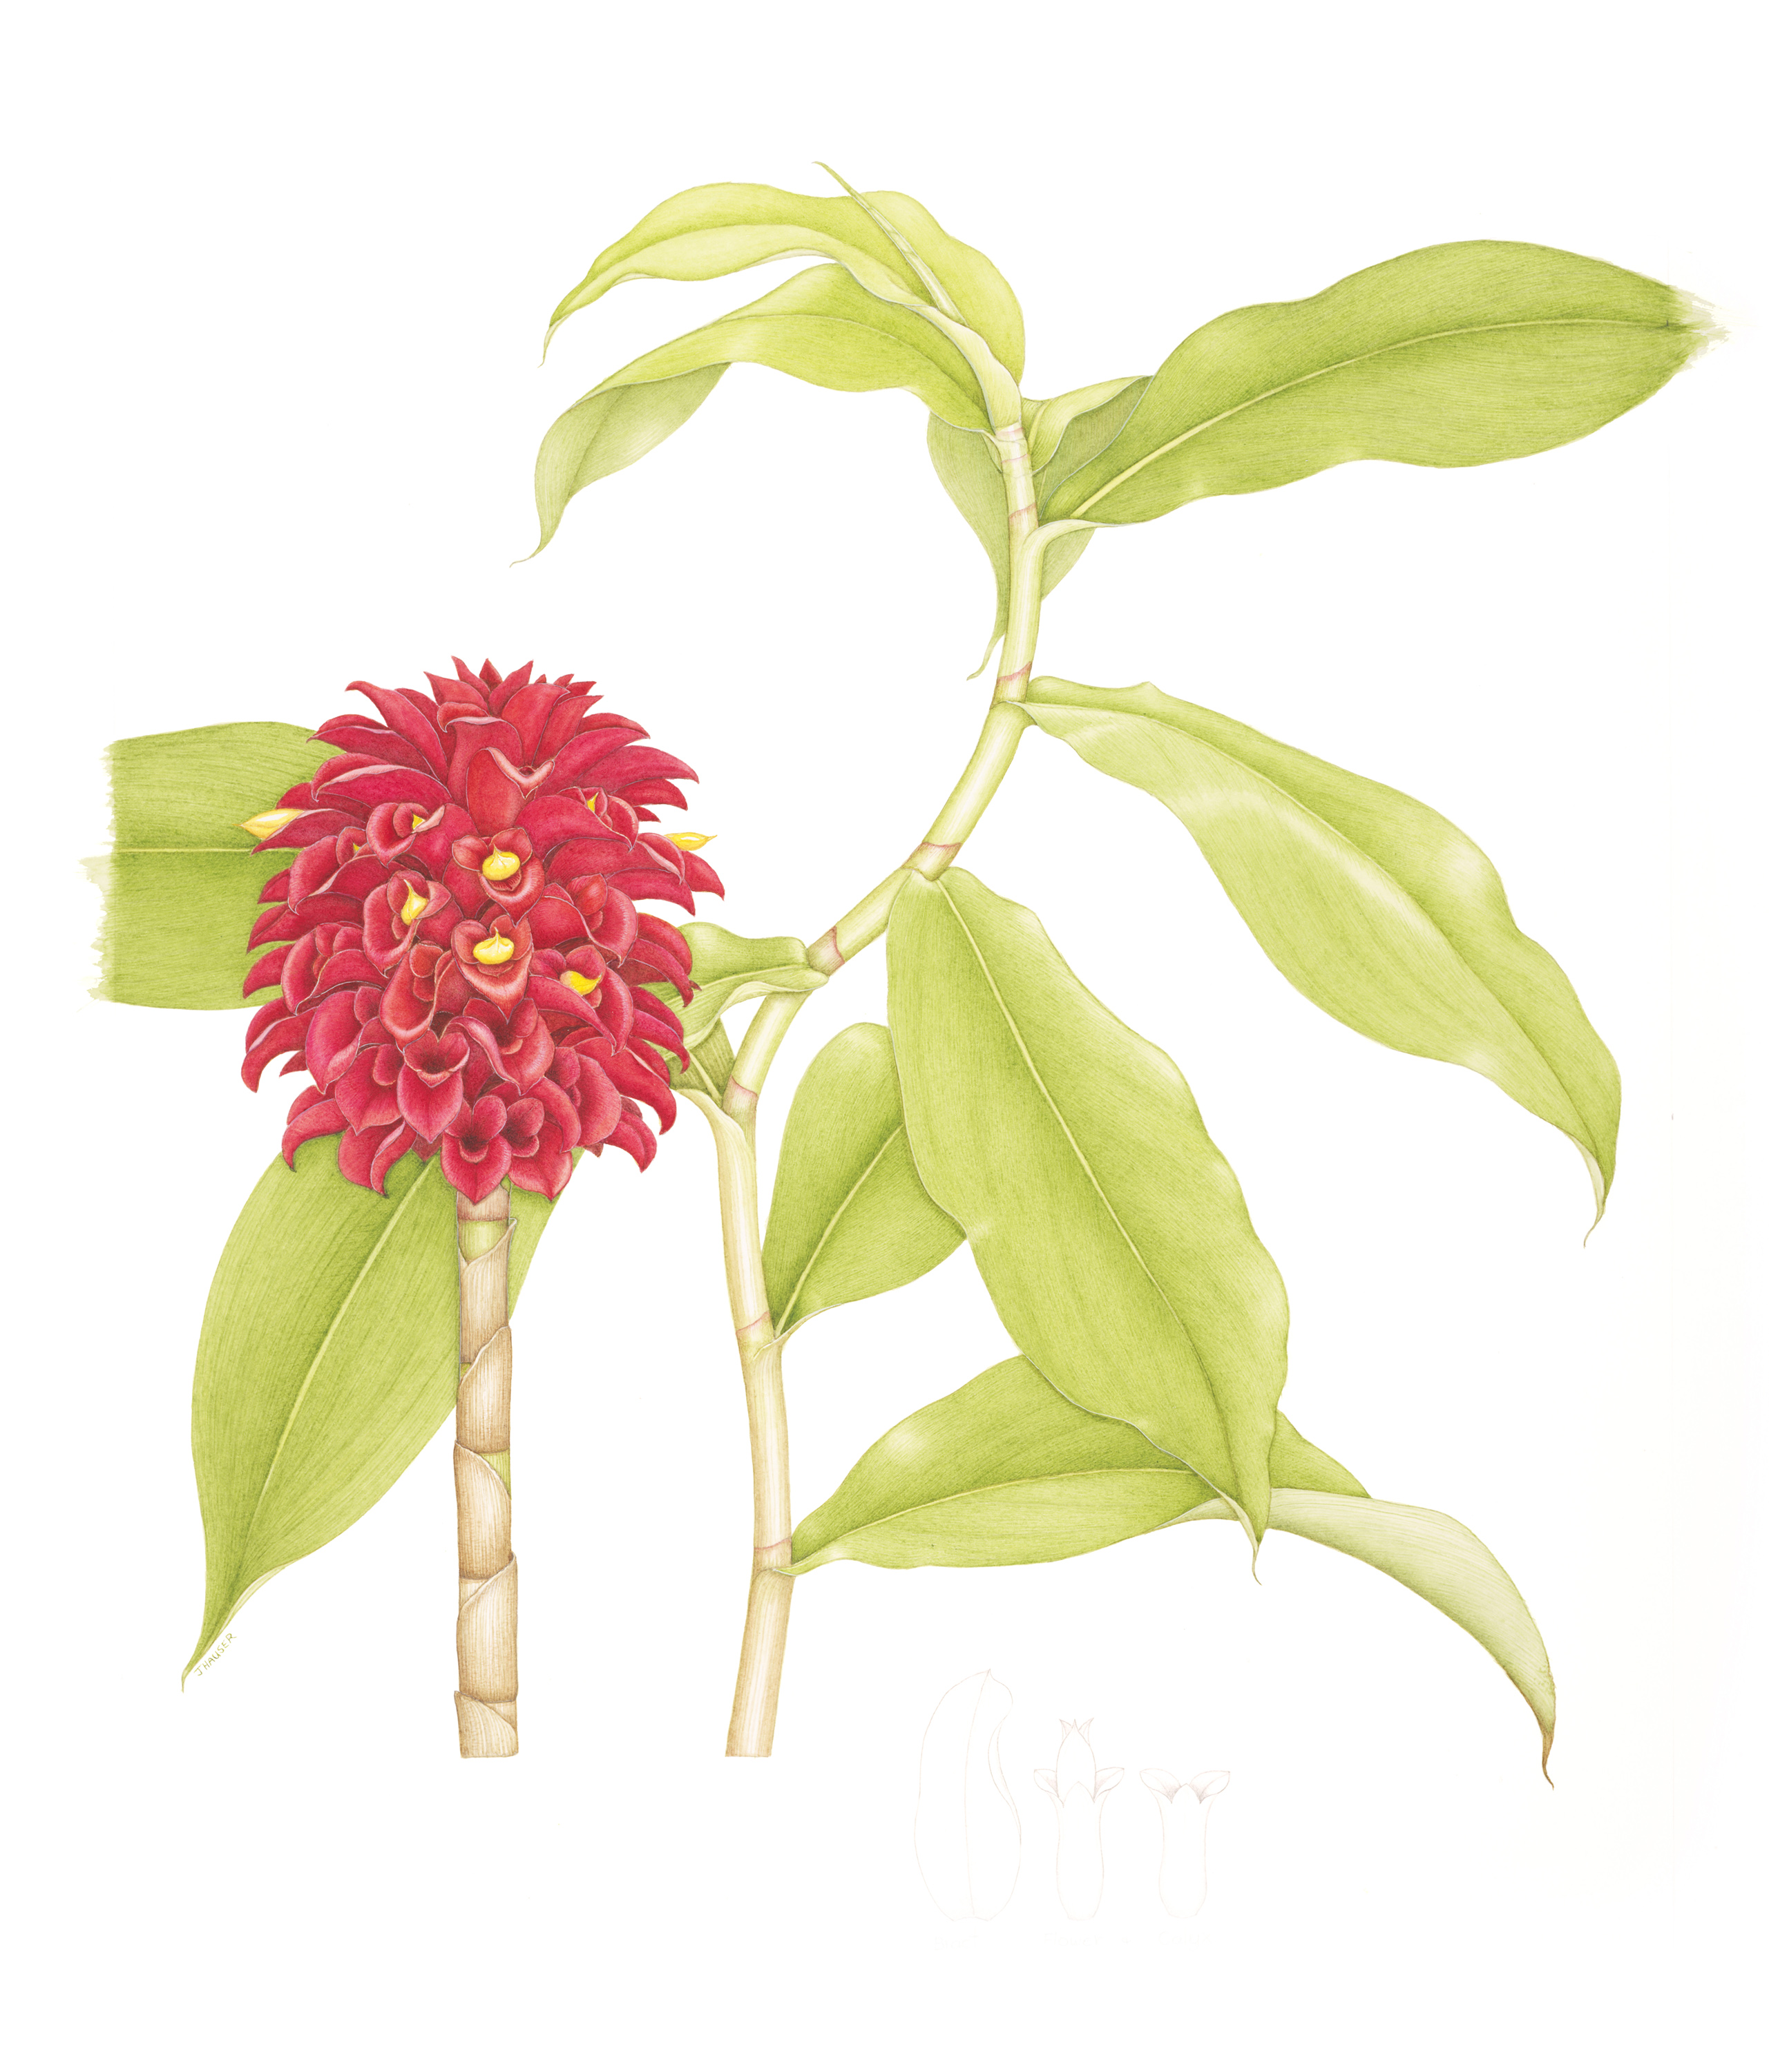 Backscratcher Ginger, drawing by Janet Hauser, 2017